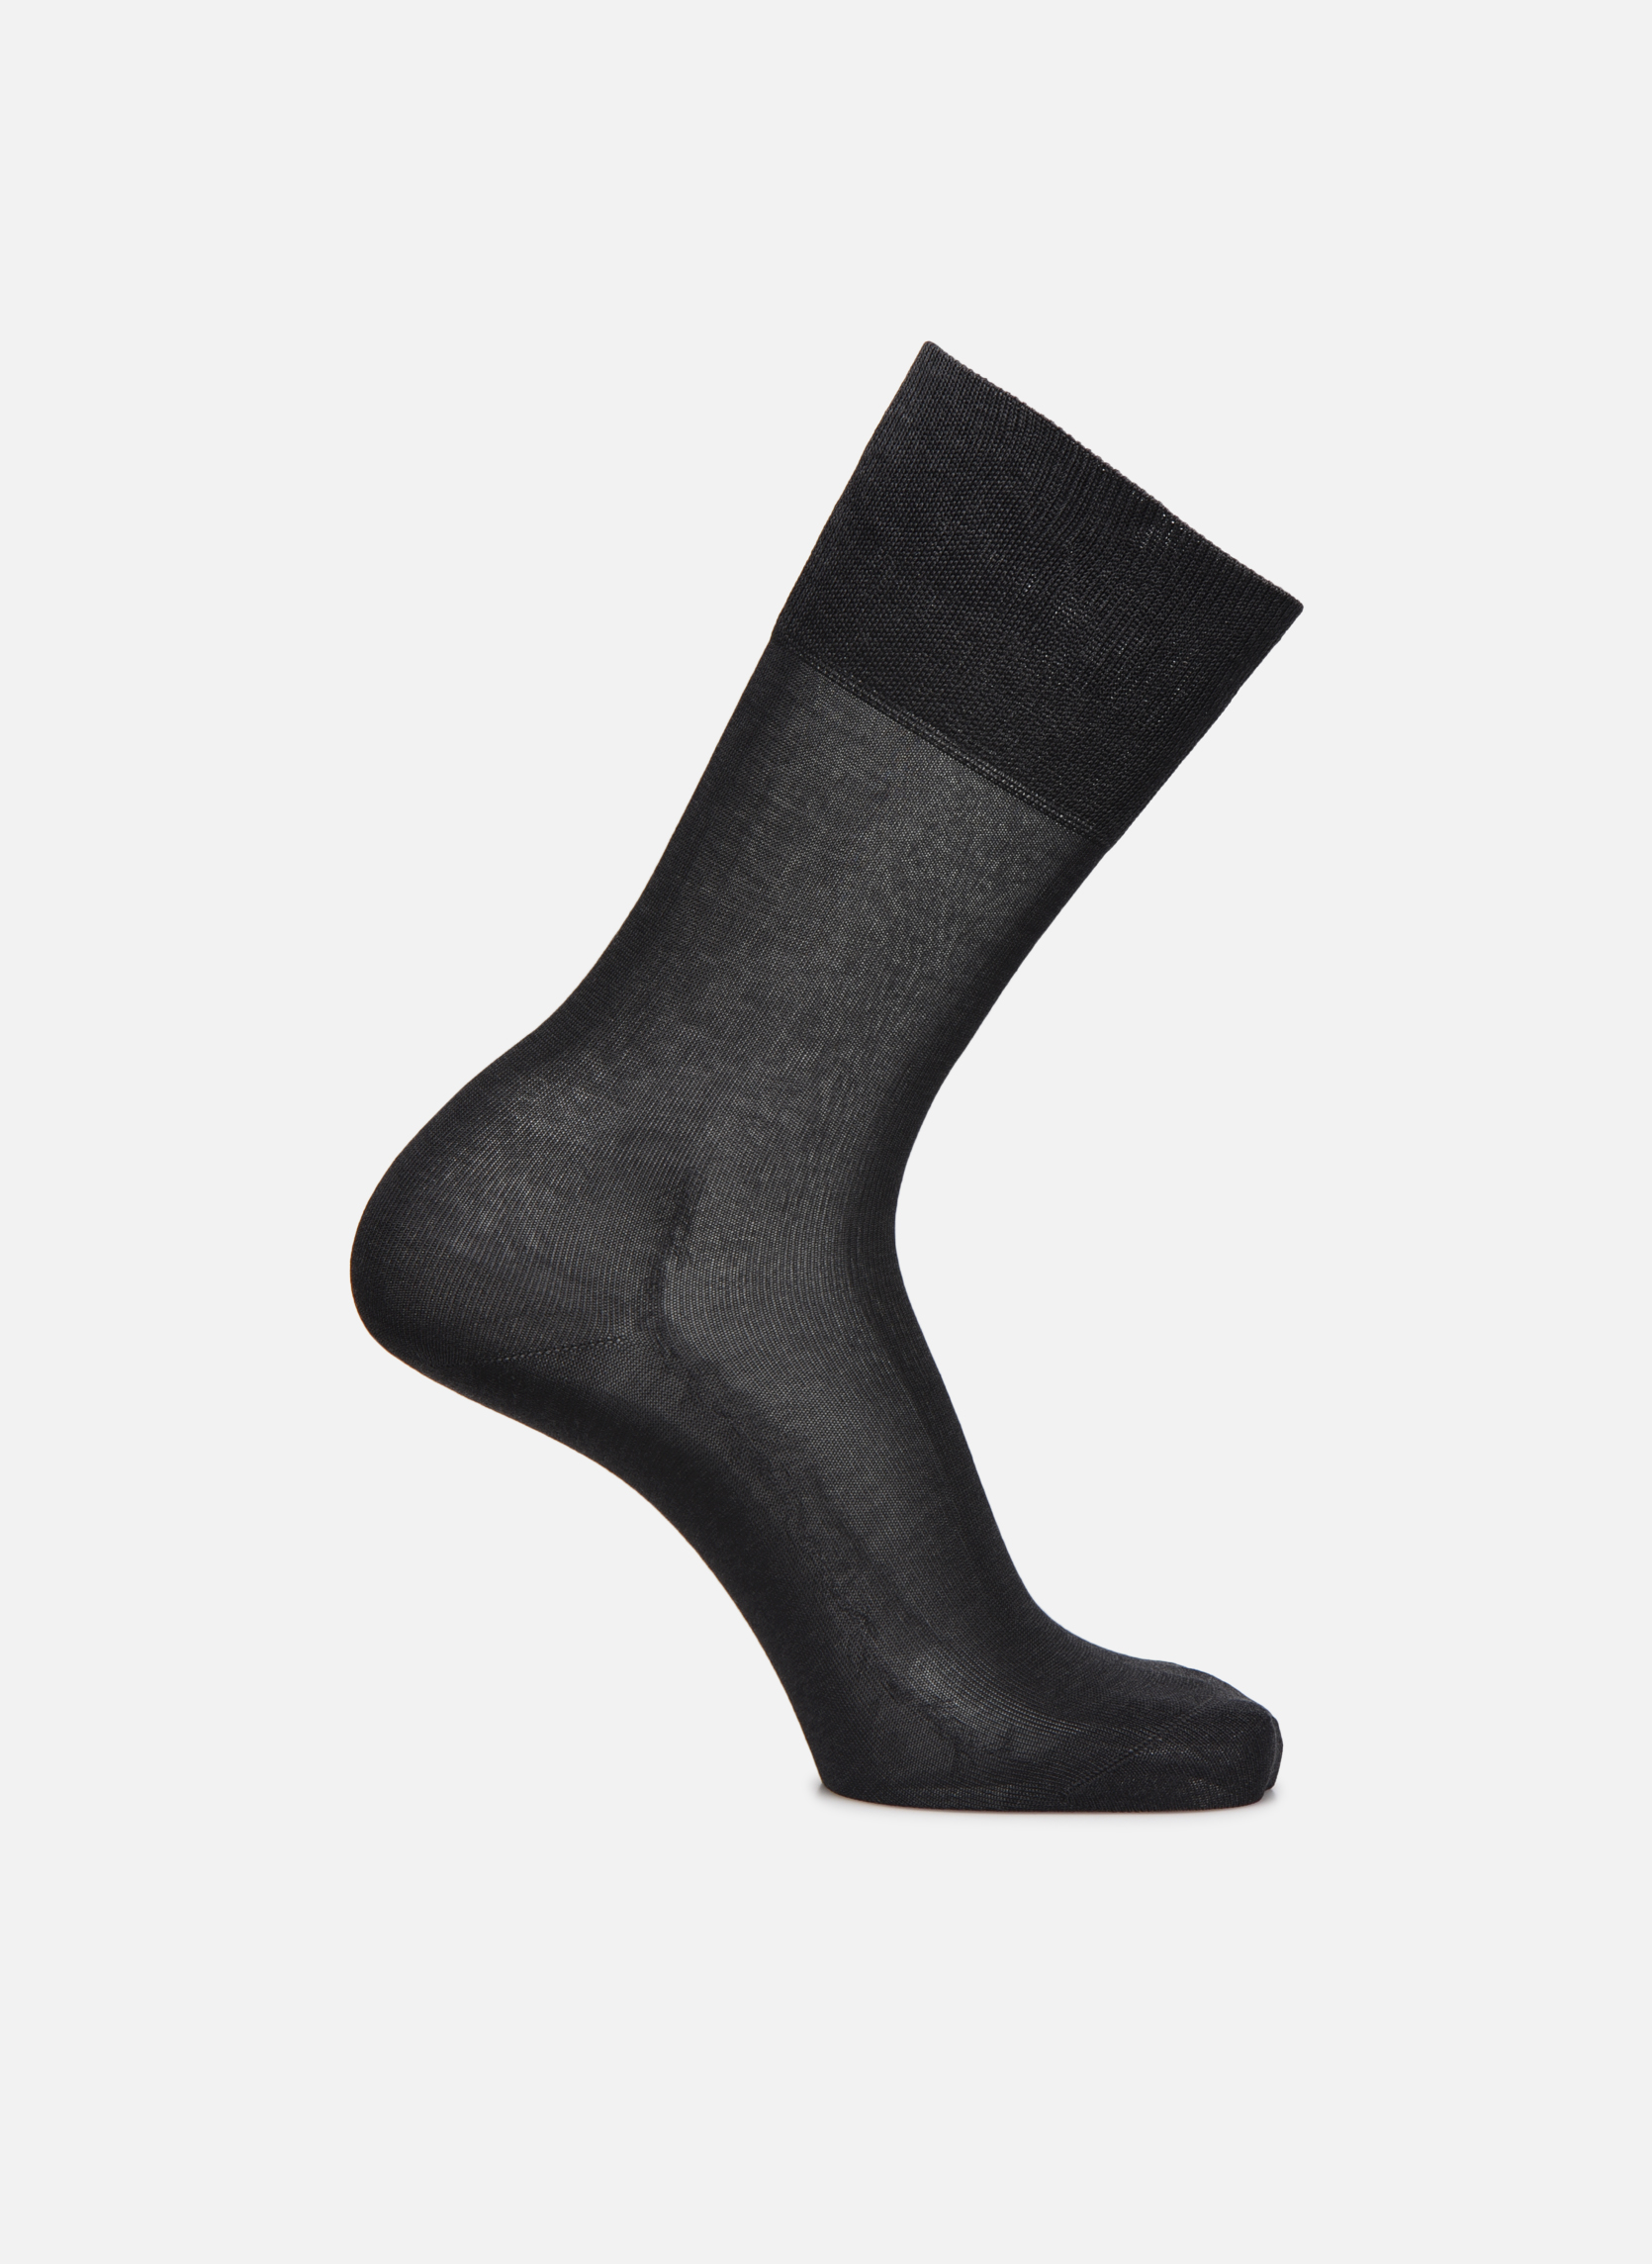 Socks TIAGO 3190 anthracite